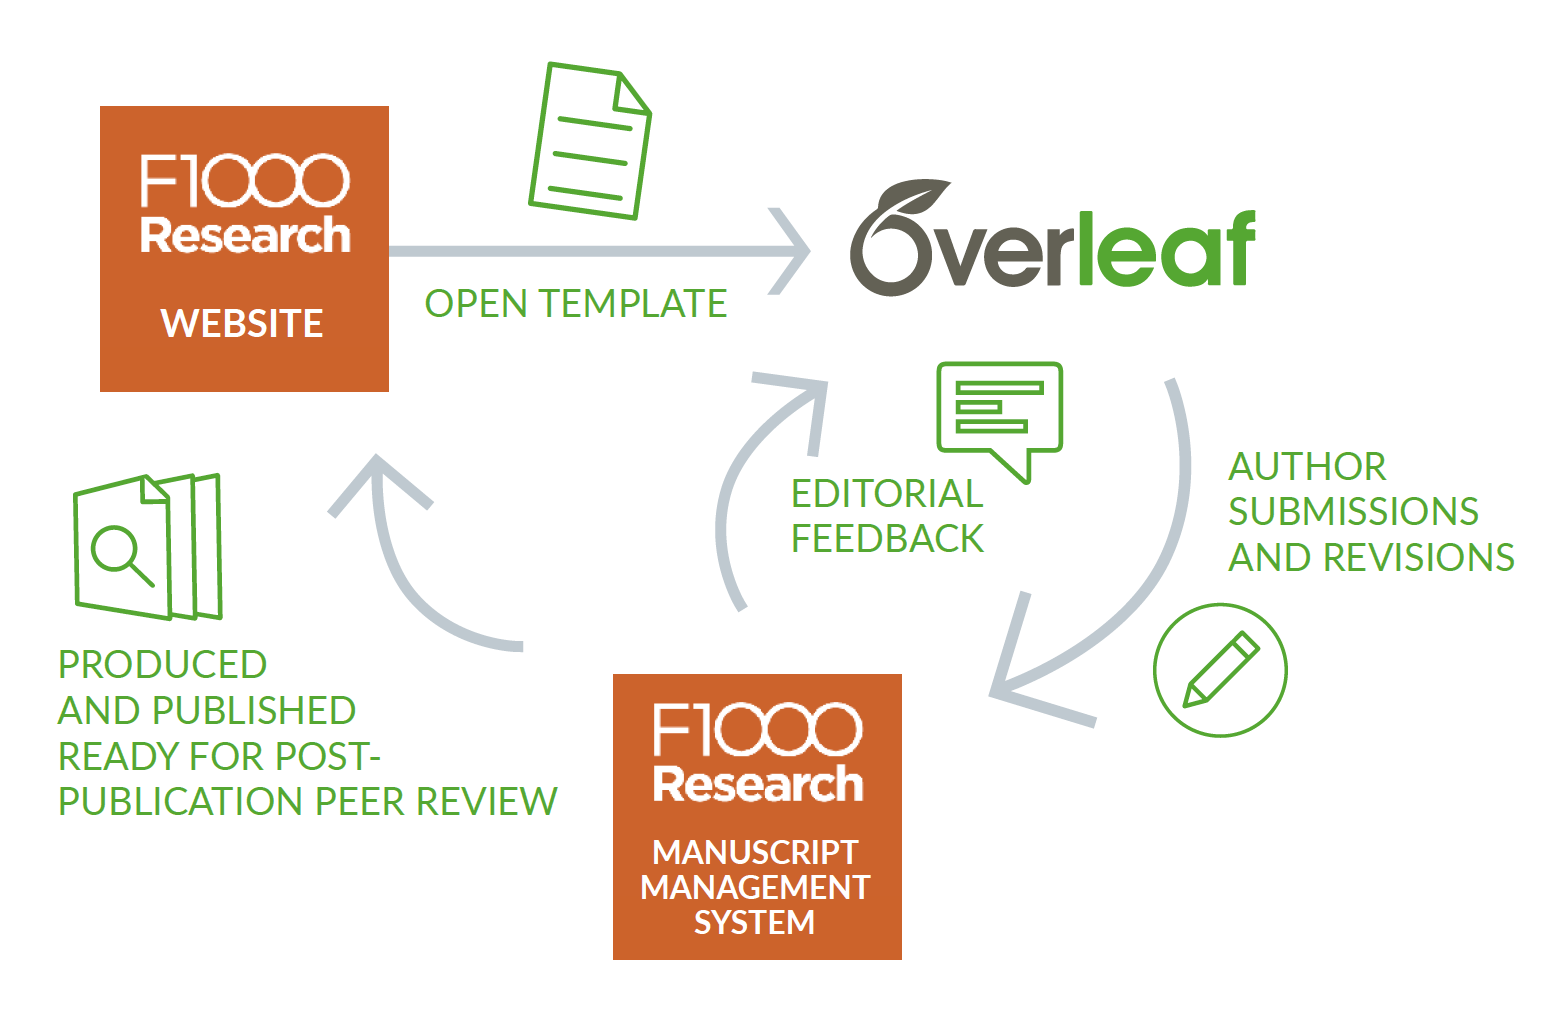 Overleaf improves the author experience with F1000Research